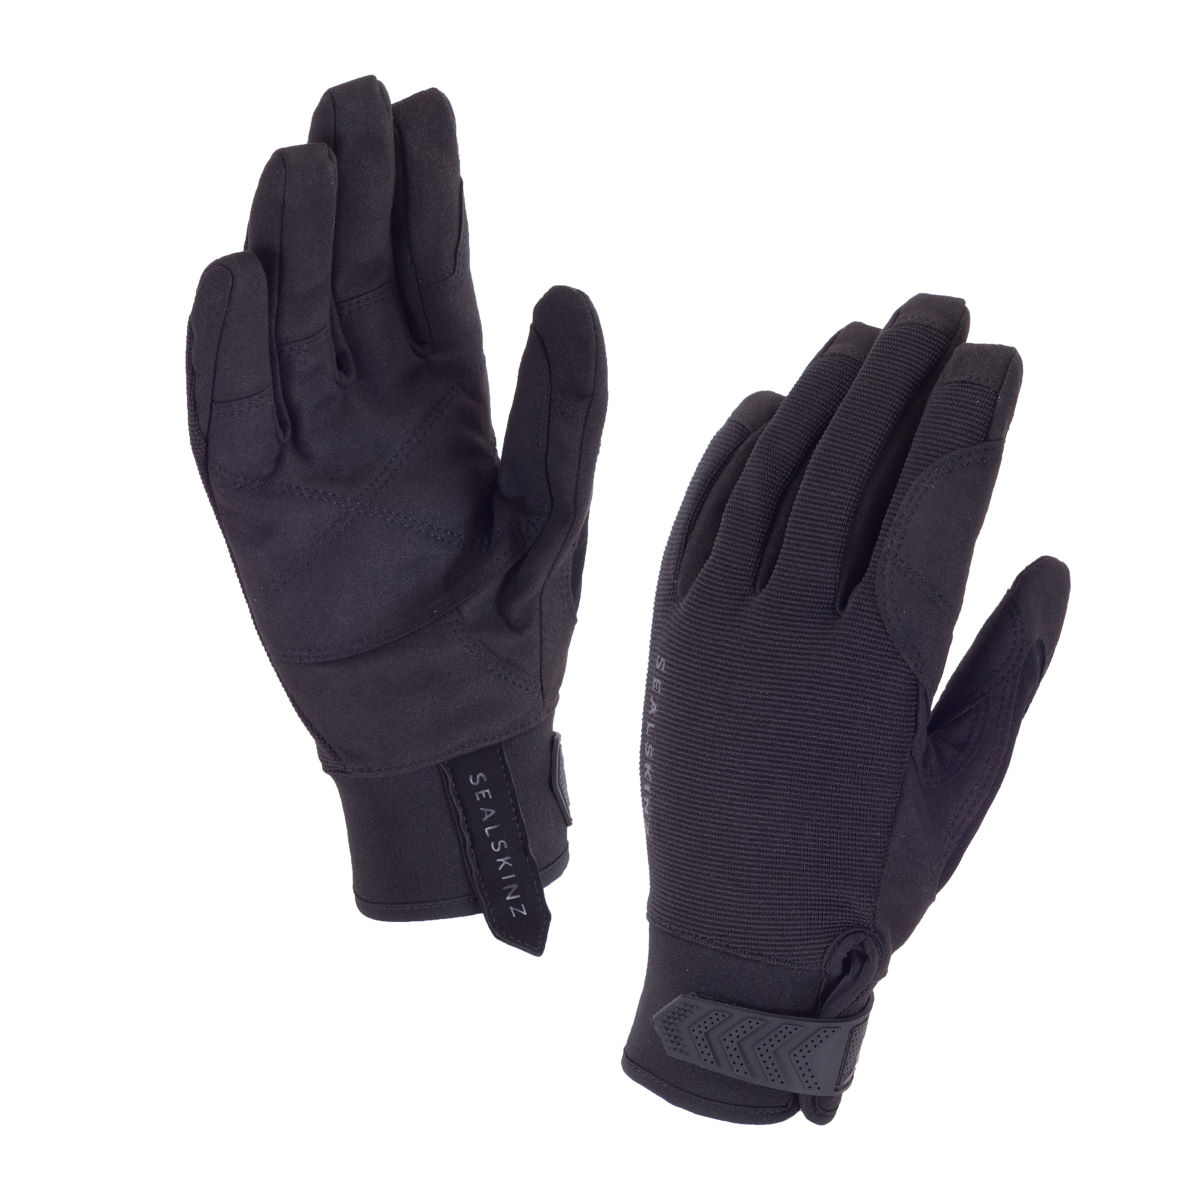 Gants SealSkinz Dragon Eye (route) - XL Noir Gants